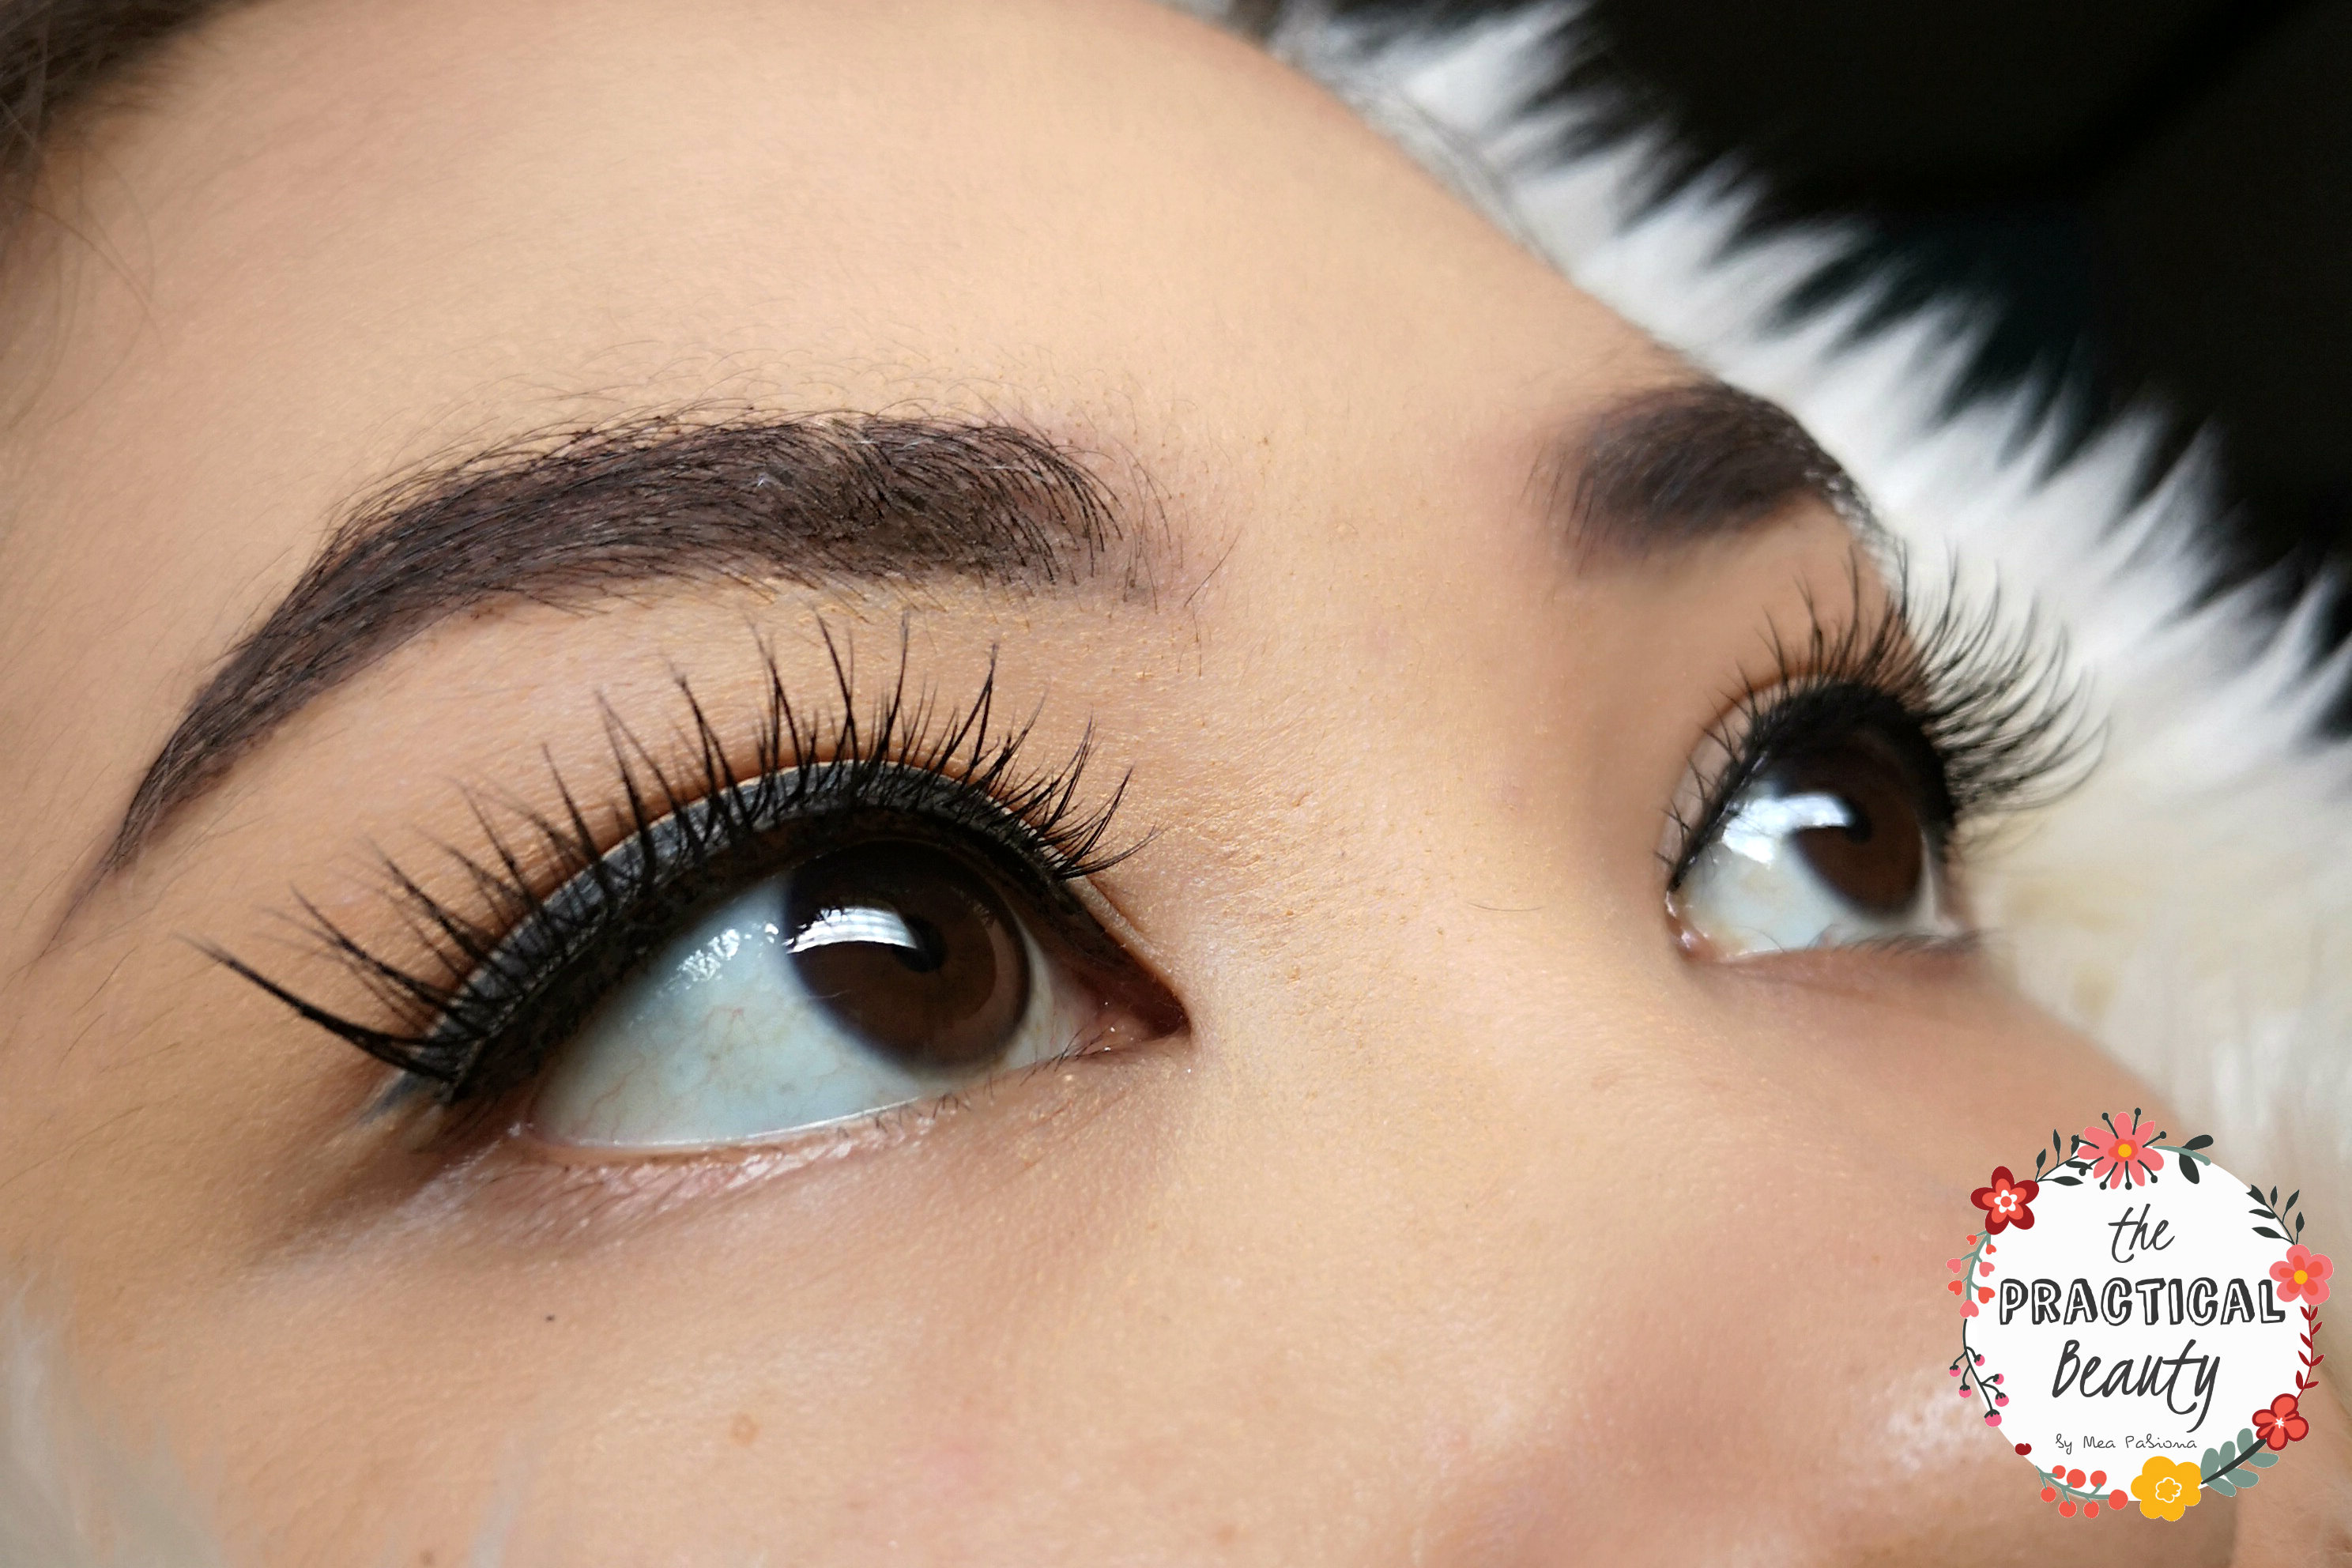 Turn Cheap Lashes Into Mink With This Old Yet Effective Lash Hack